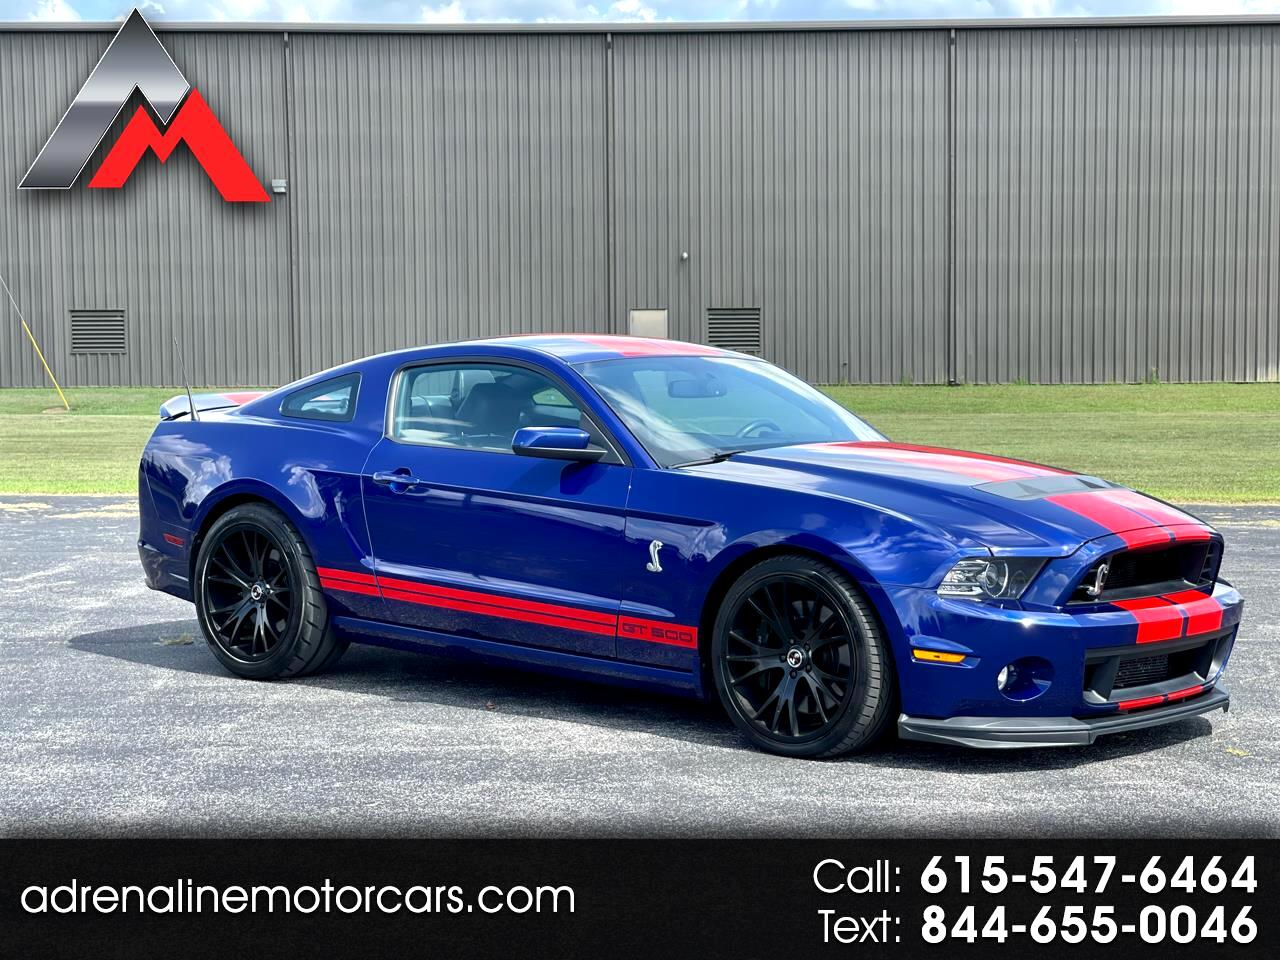 Ford Mustang Shelby GT500 2014